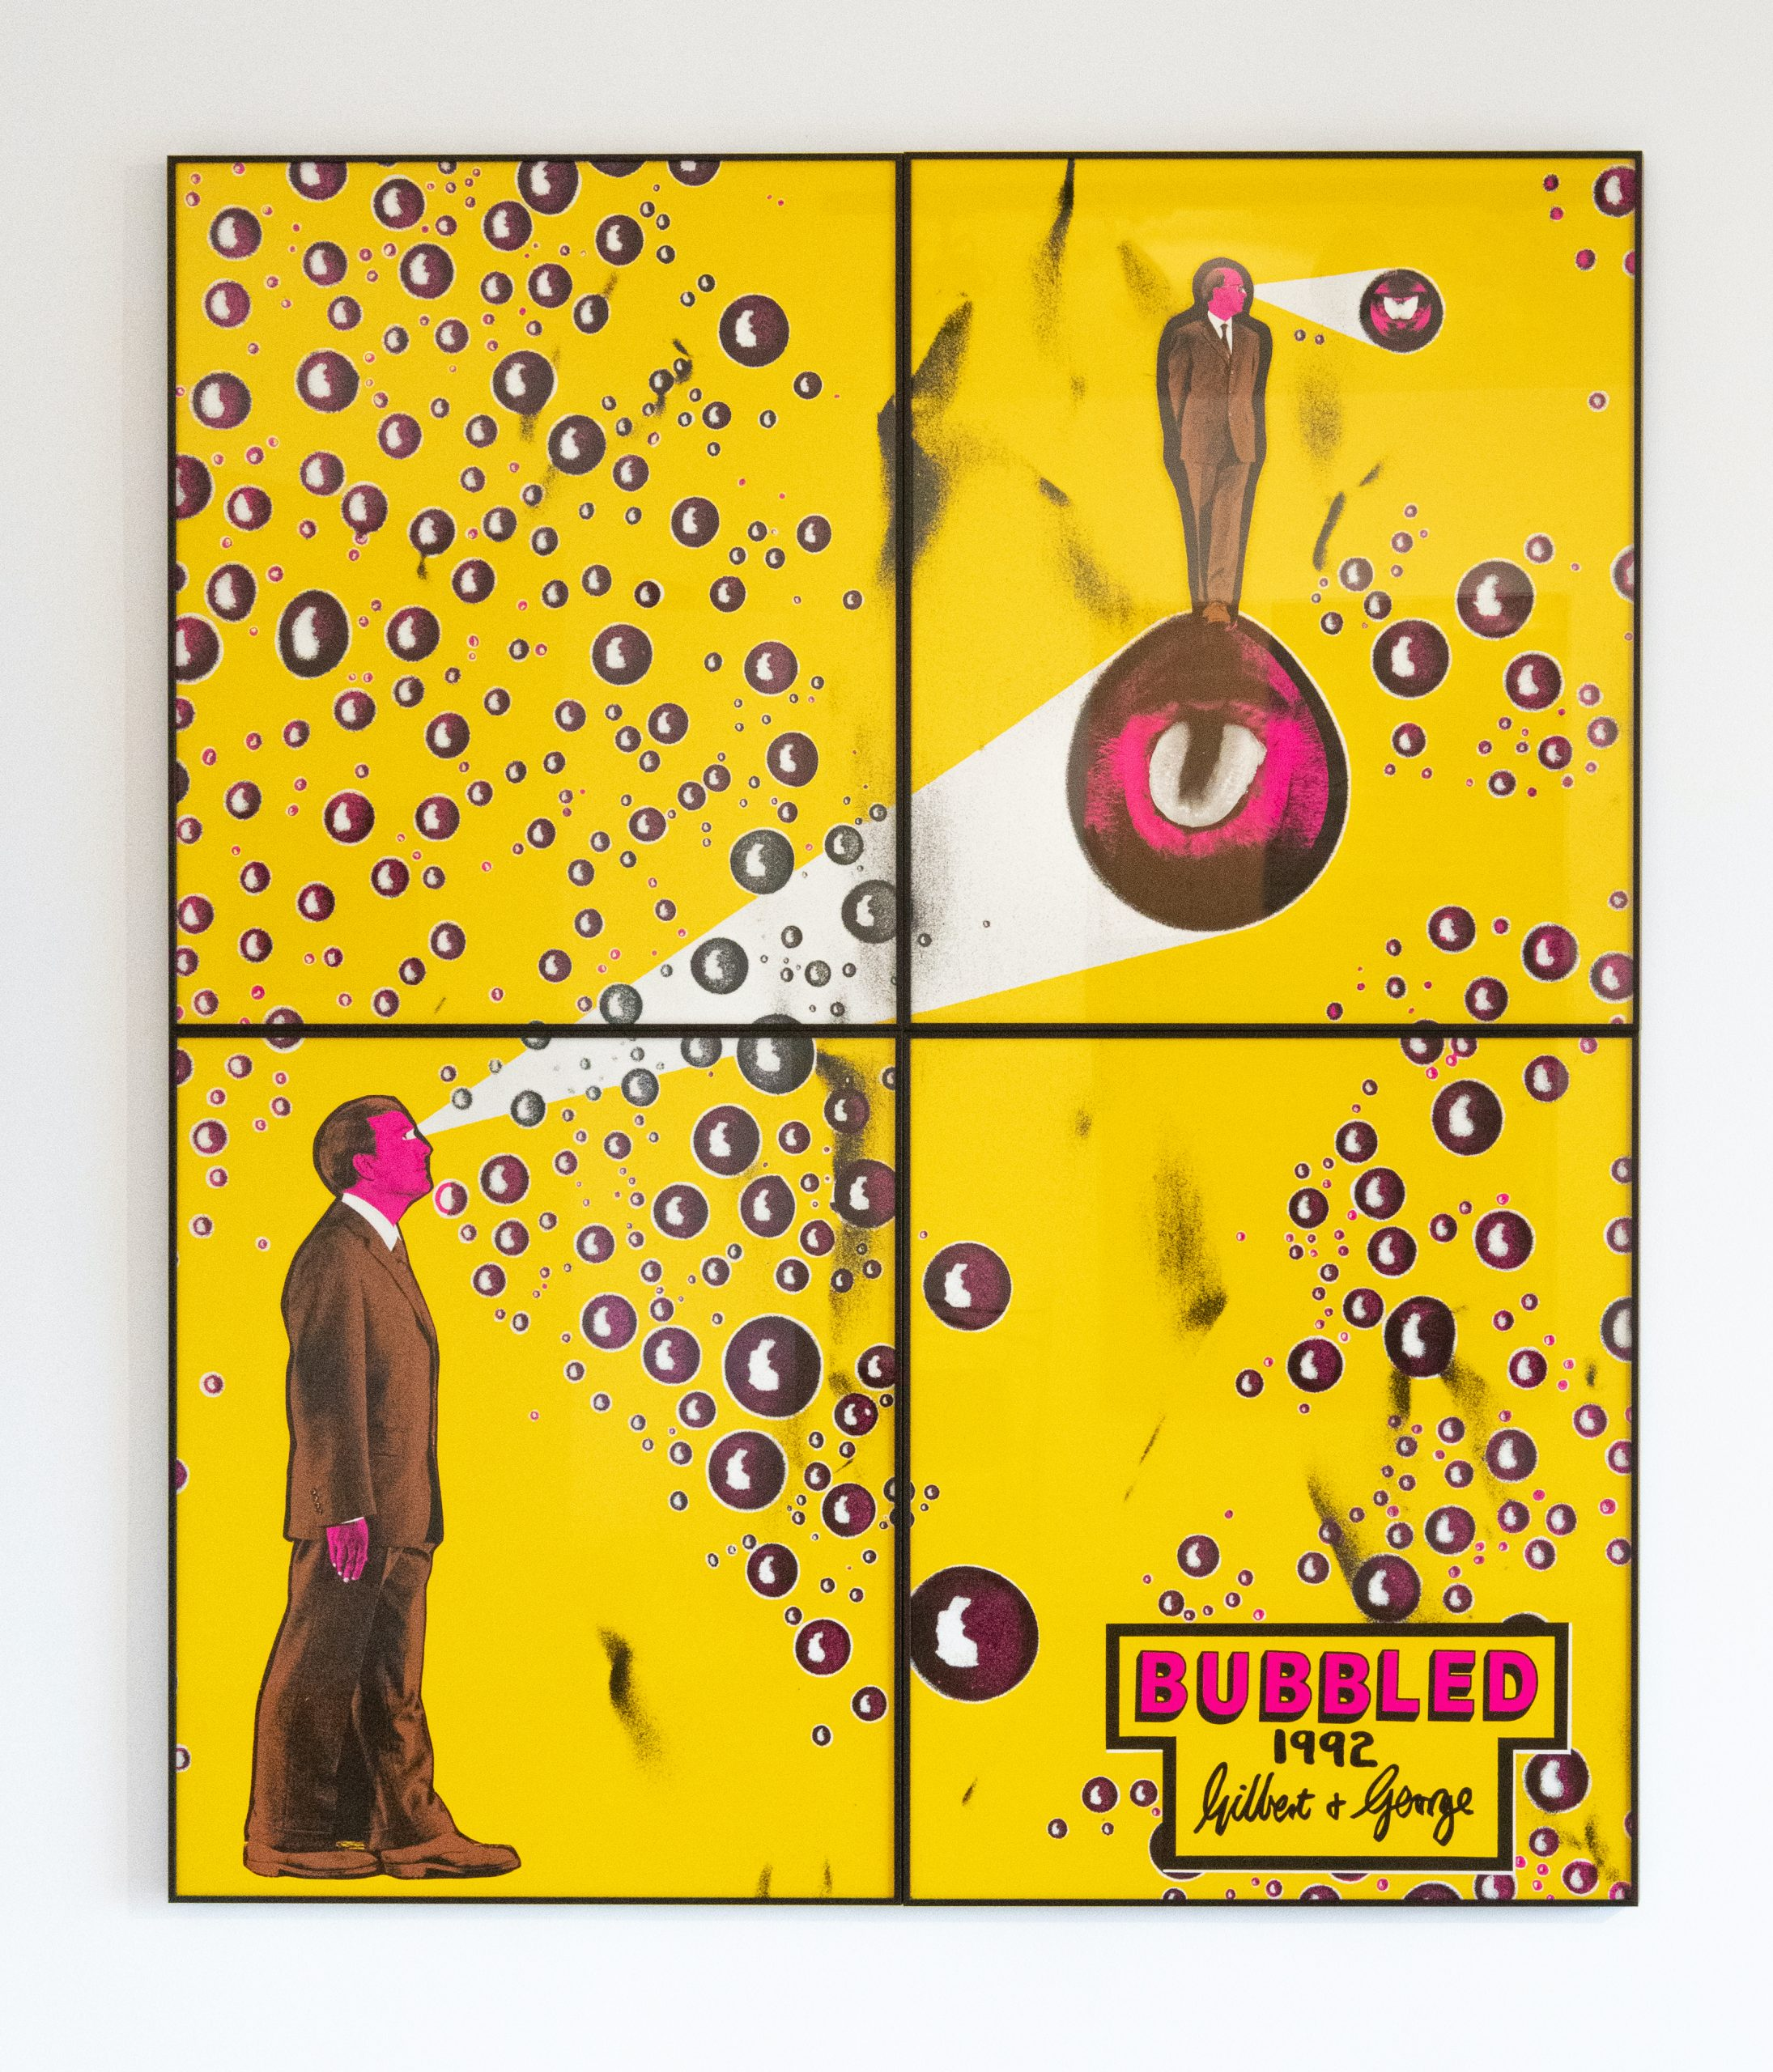 Gilbert & George Bubbled, 1992 Signed, titled and dated Hand coloured gelatin silver prints in artists' frames 4 parts, 169 x 142 cm; (66 1/2 x 55 7/8 in.)